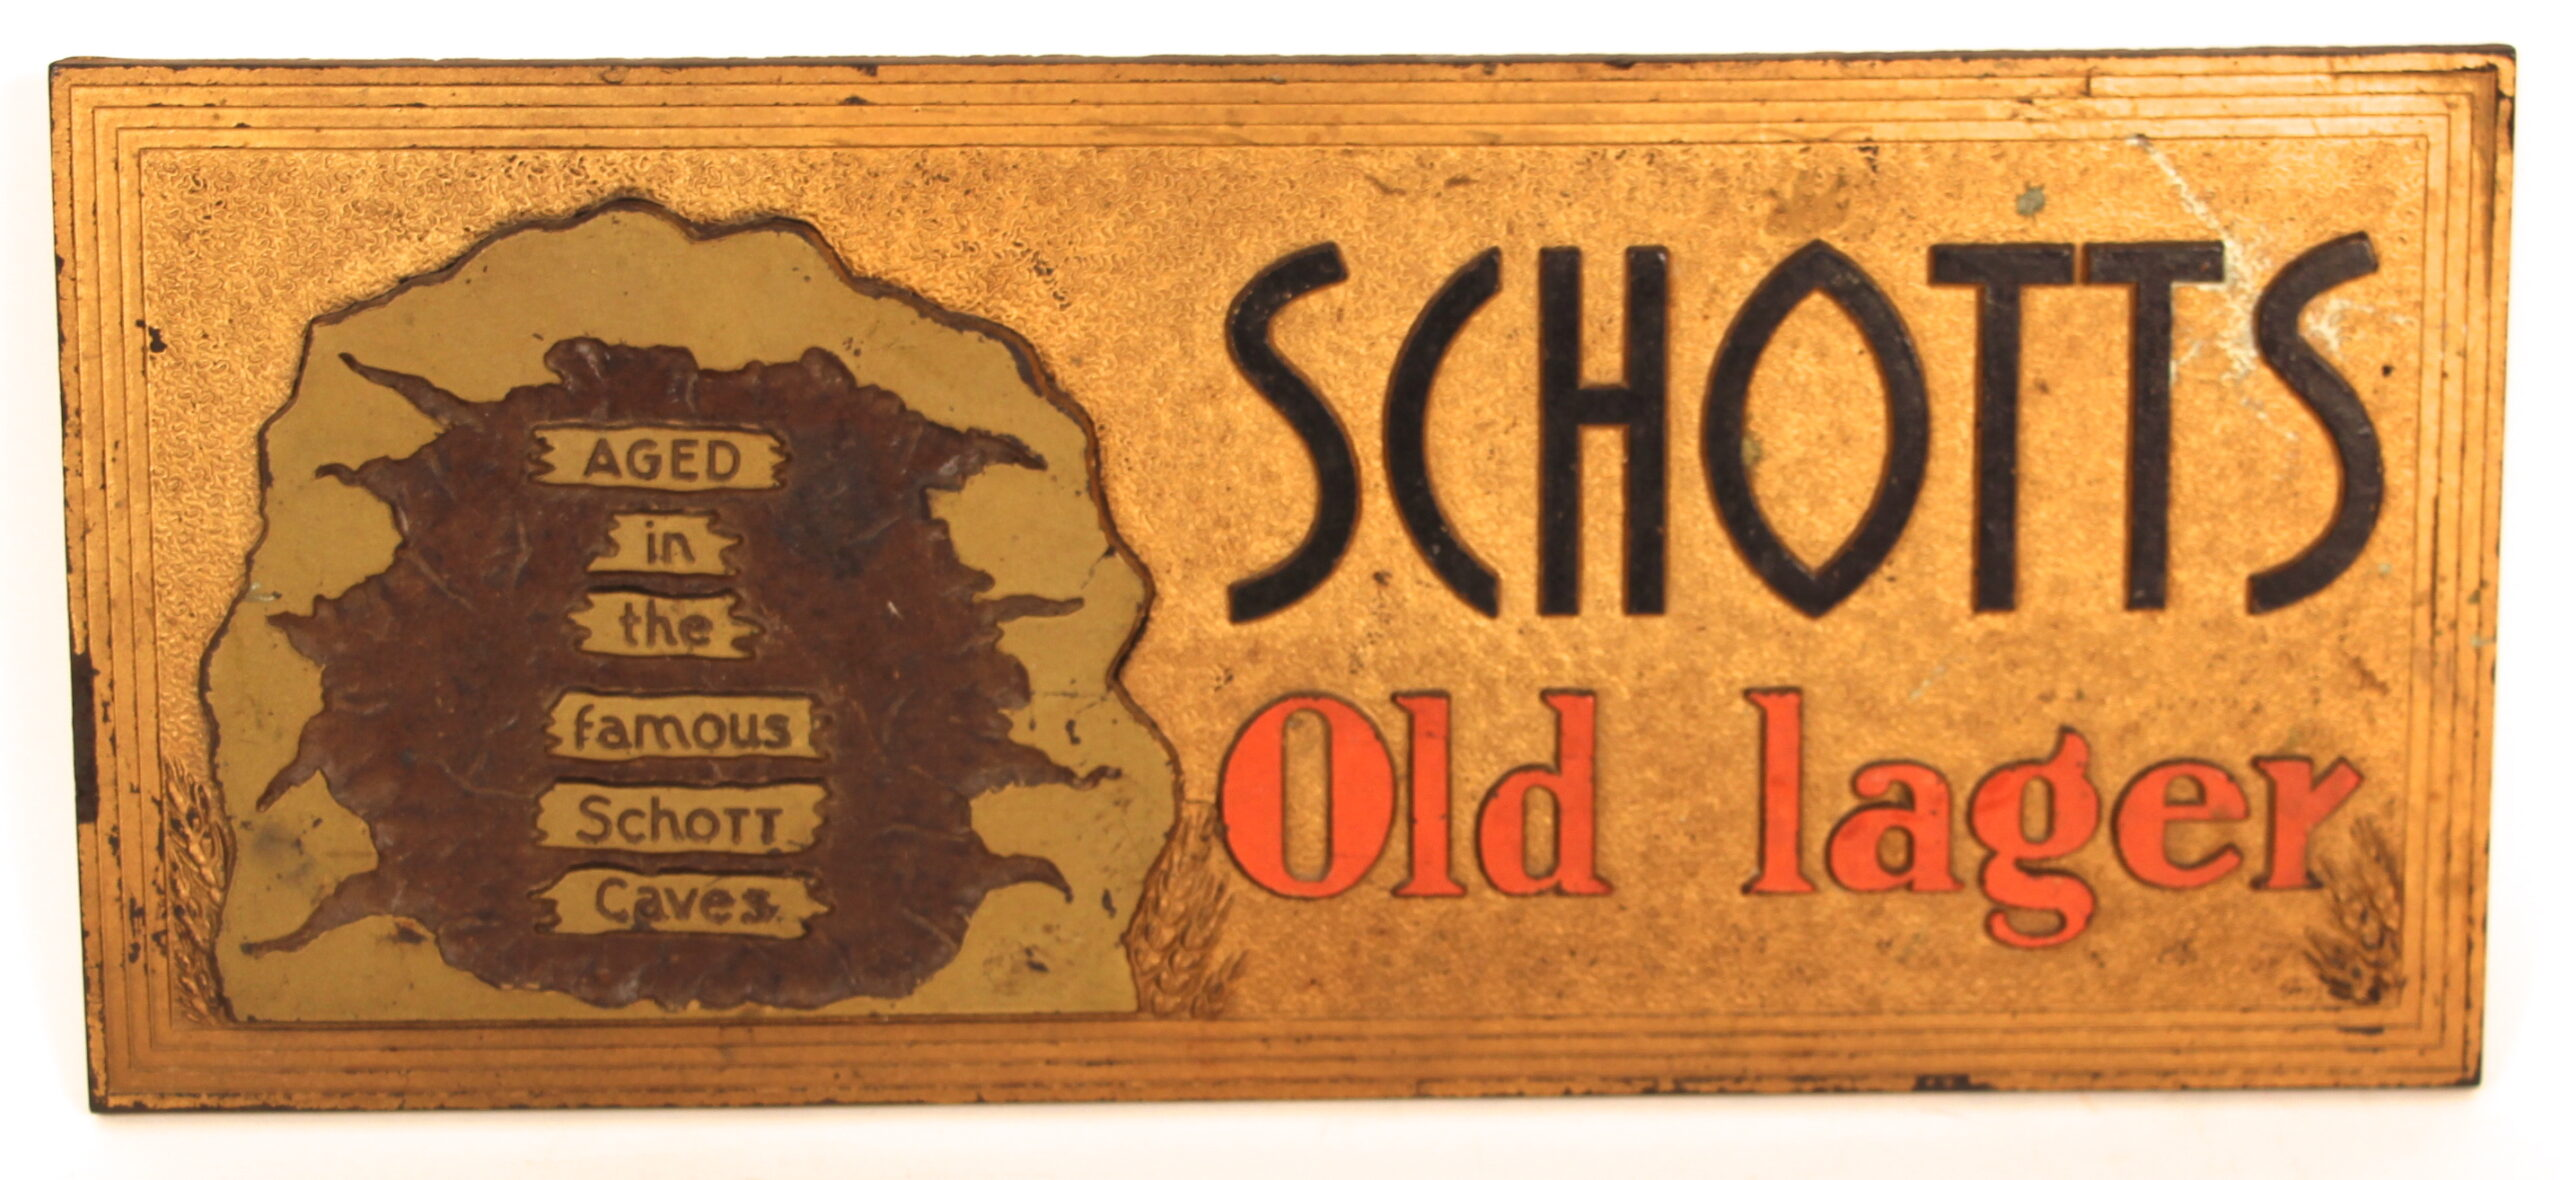 Schotts Old Lager Meyercord Beer Sign, Schott Brewing Co, Highland, IL. Circa 1930's